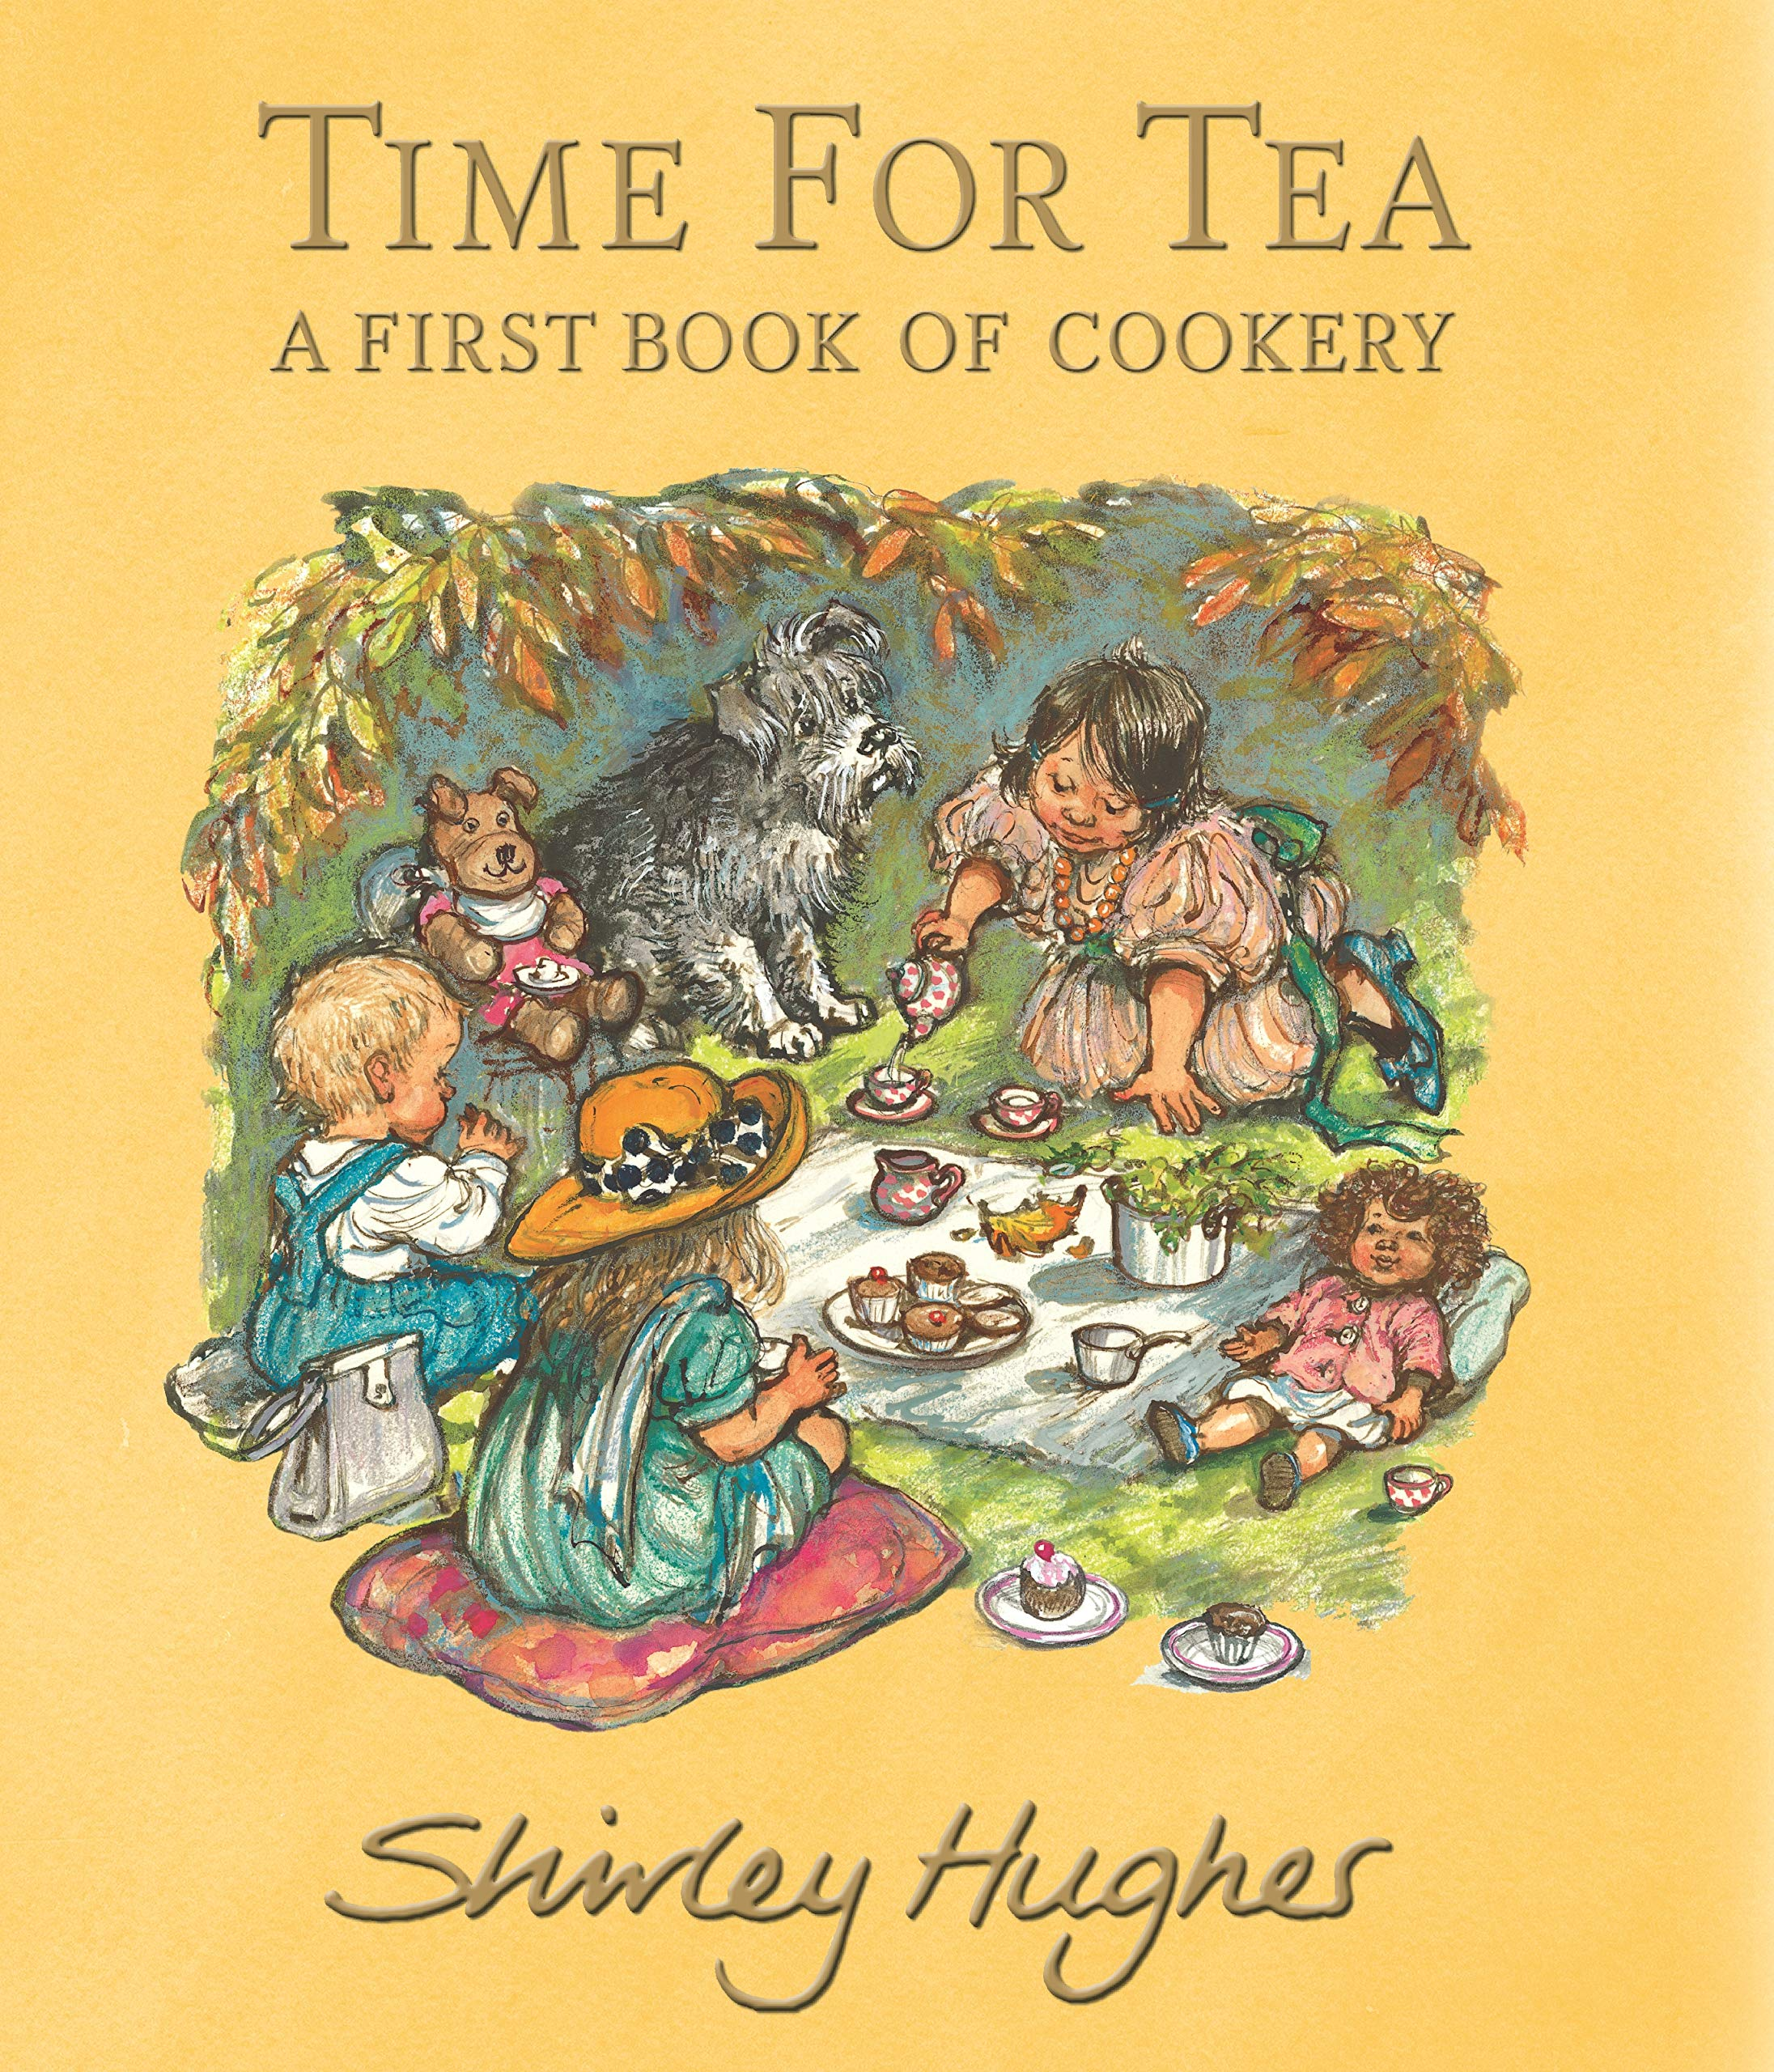 Time For Tea : A First Book of Cookery | Shirley Hughes | Charlie Byrne's